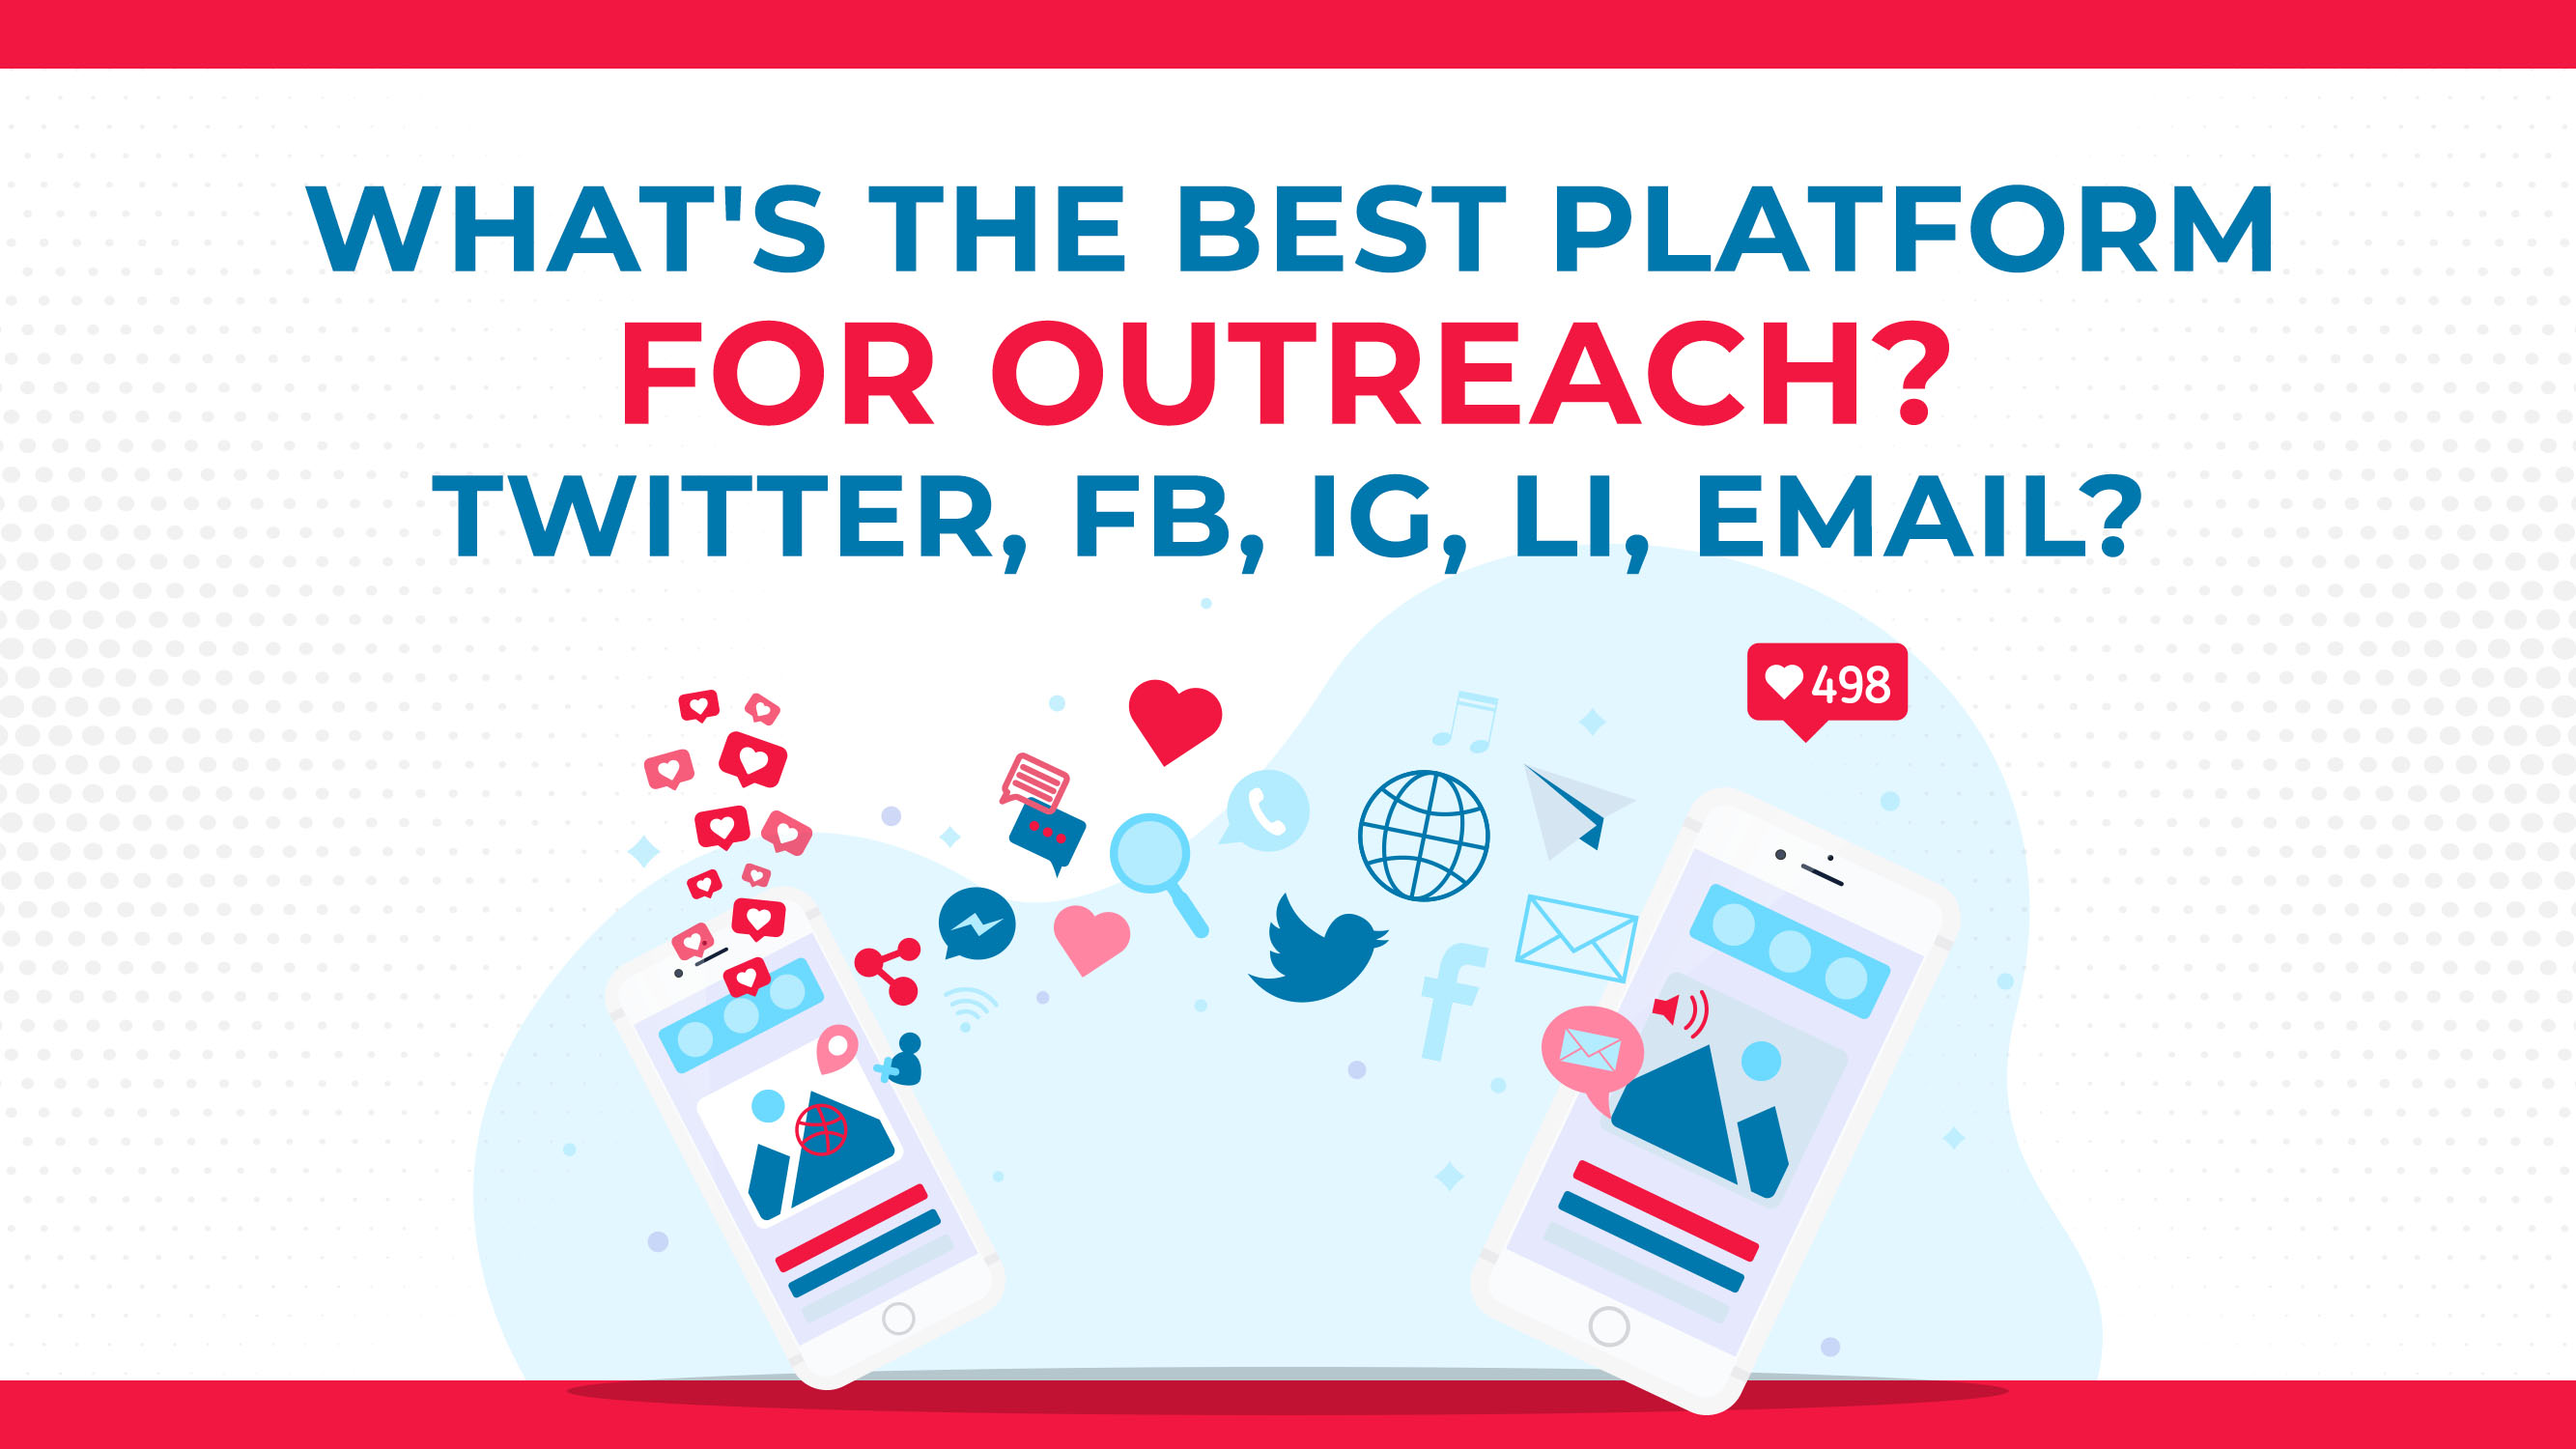 What's The Best Platform For Outreach: Twitter, Facebook, Instagram, LinkedIn, Or Email?